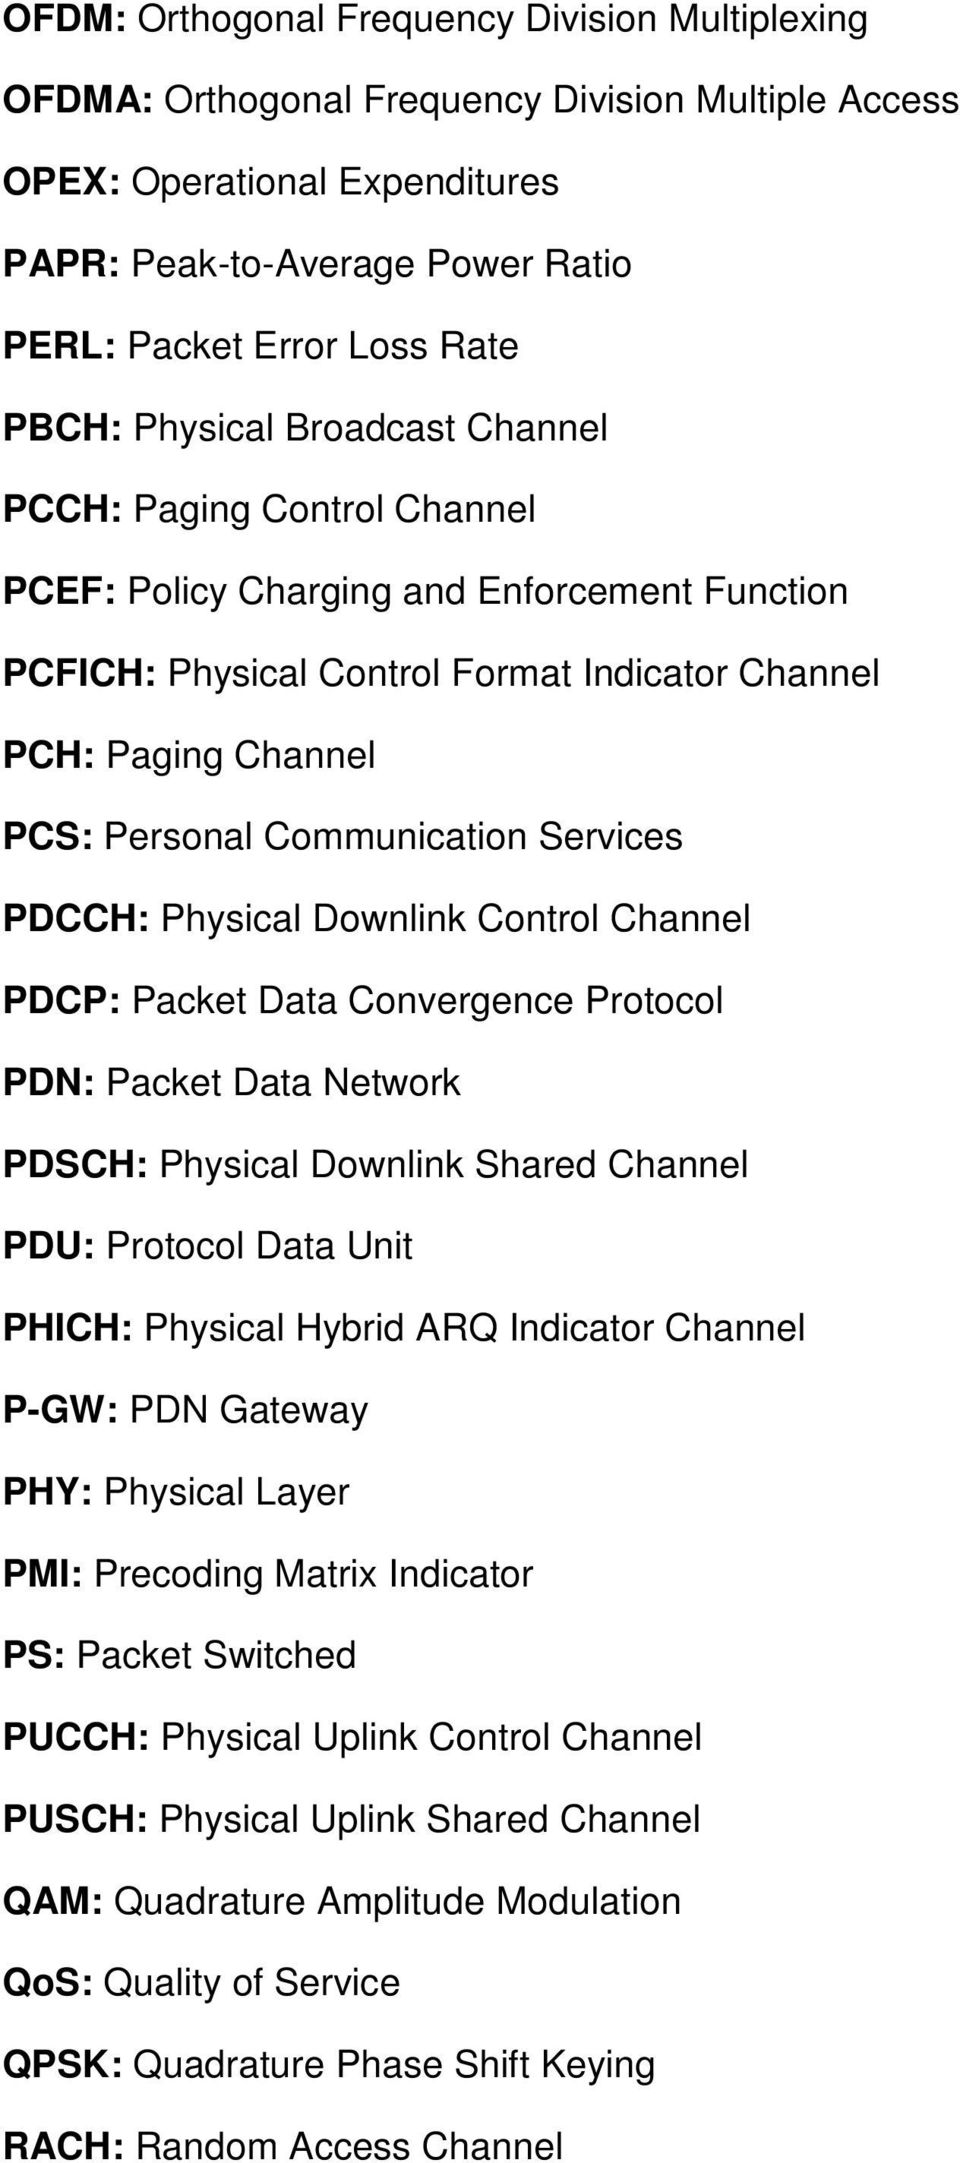 Communication Services PDCCH: Physical Downlink Control Channel PDCP: Packet Data Convergence Protocol PDN: Packet Data Network PDSCH: Physical Downlink Shared Channel PDU: Protocol Data Unit PHICH: